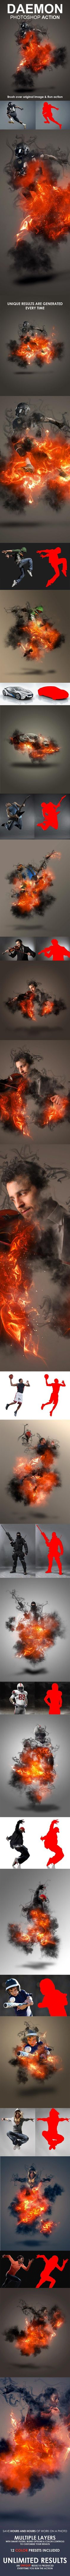 Daemon Burn in Hell Photoshop Action